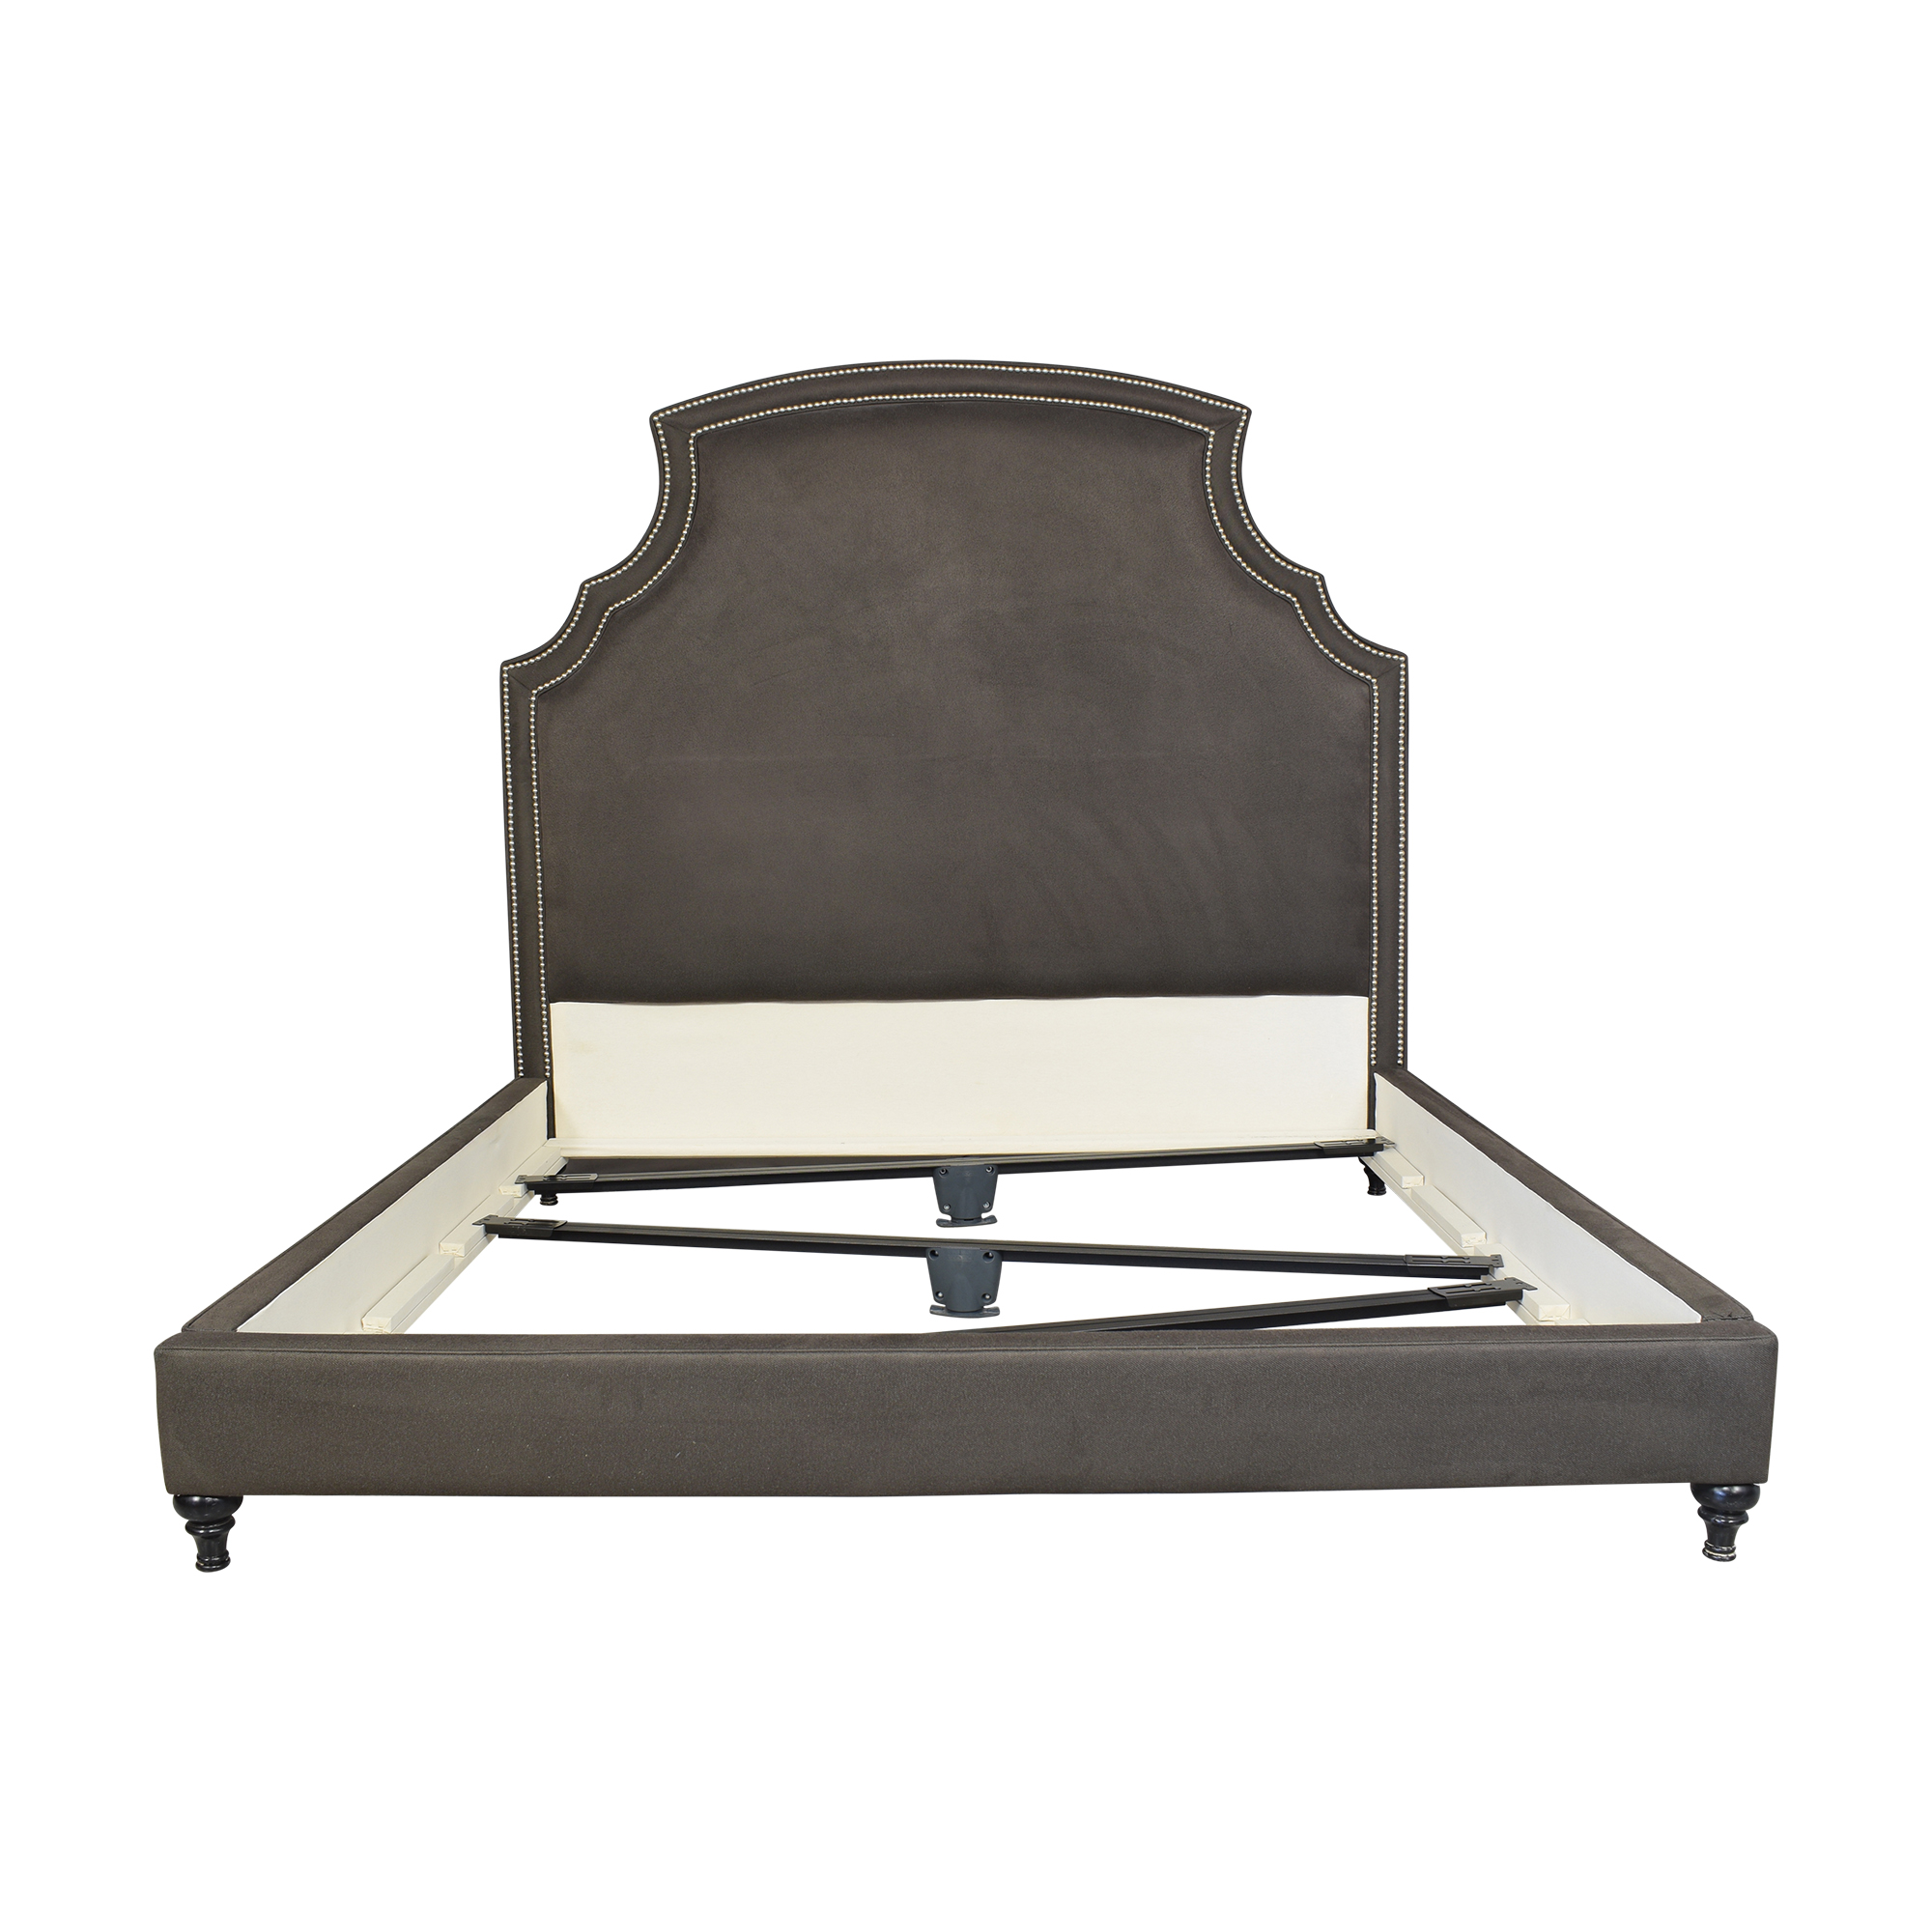 Upholstered King Bed with Nailhead Trim